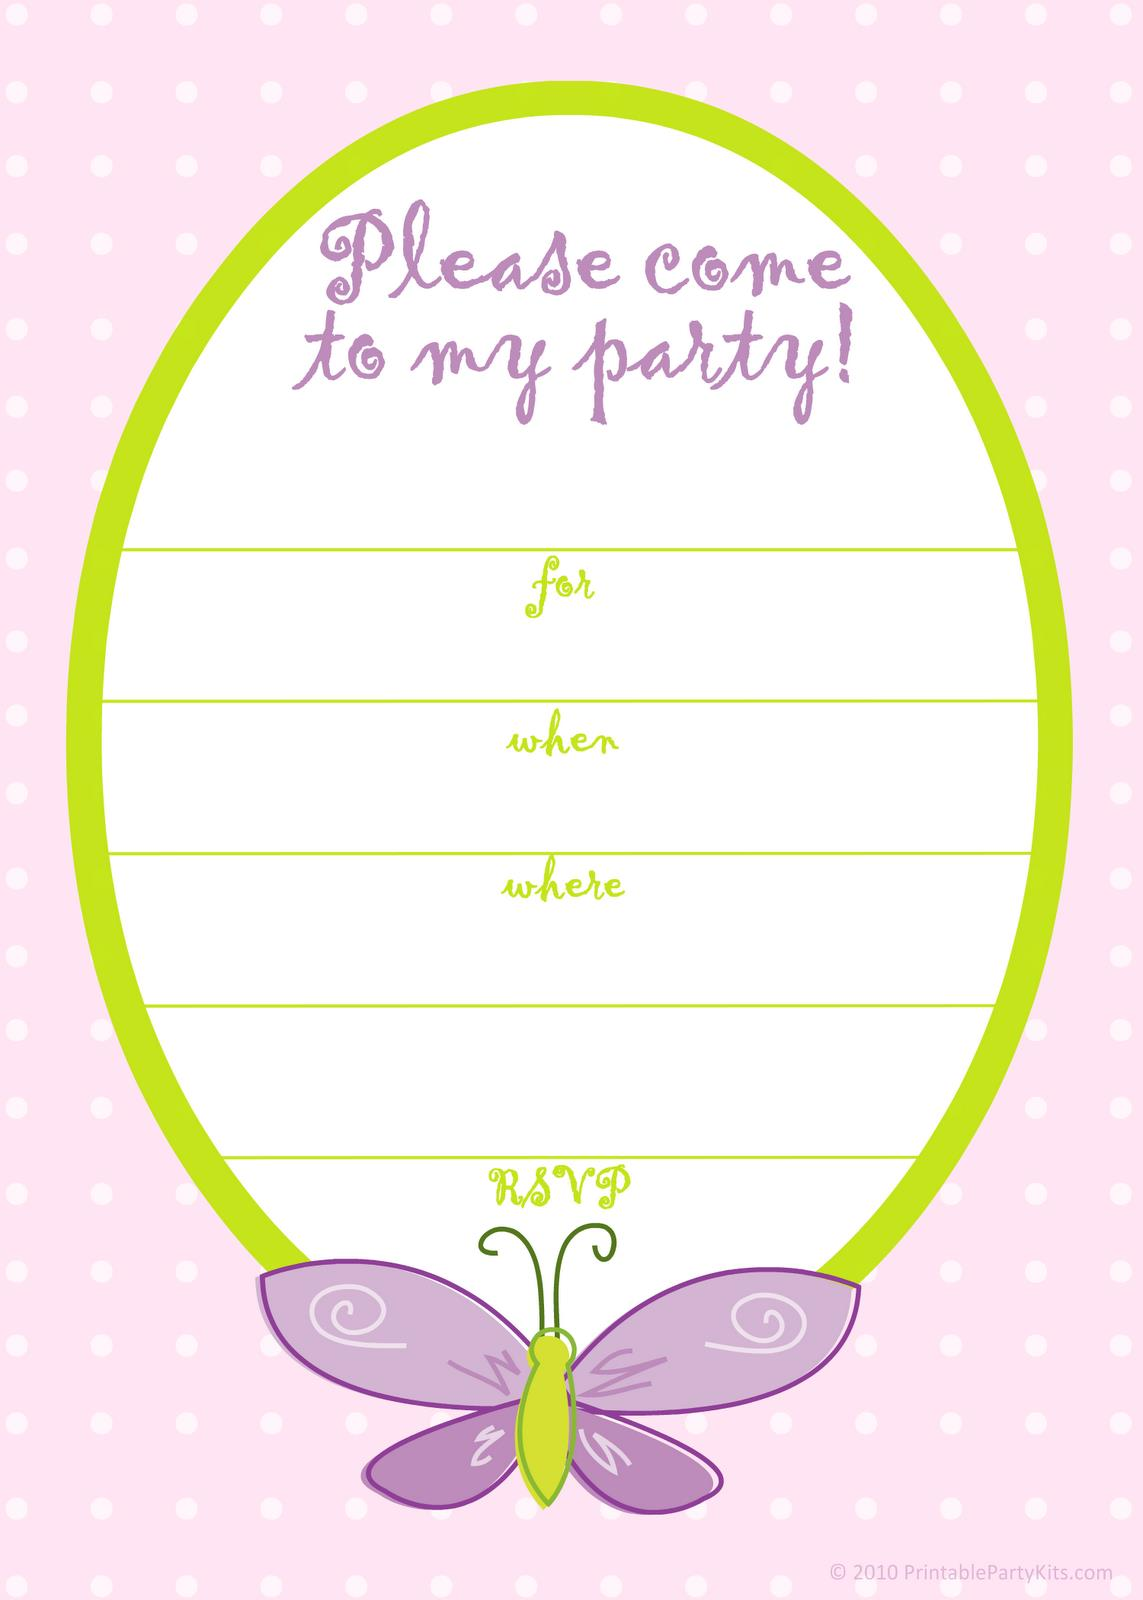 children's birthday party invitation templates free ; birthday_invites__adult_girls_birthday_invitations_images_6